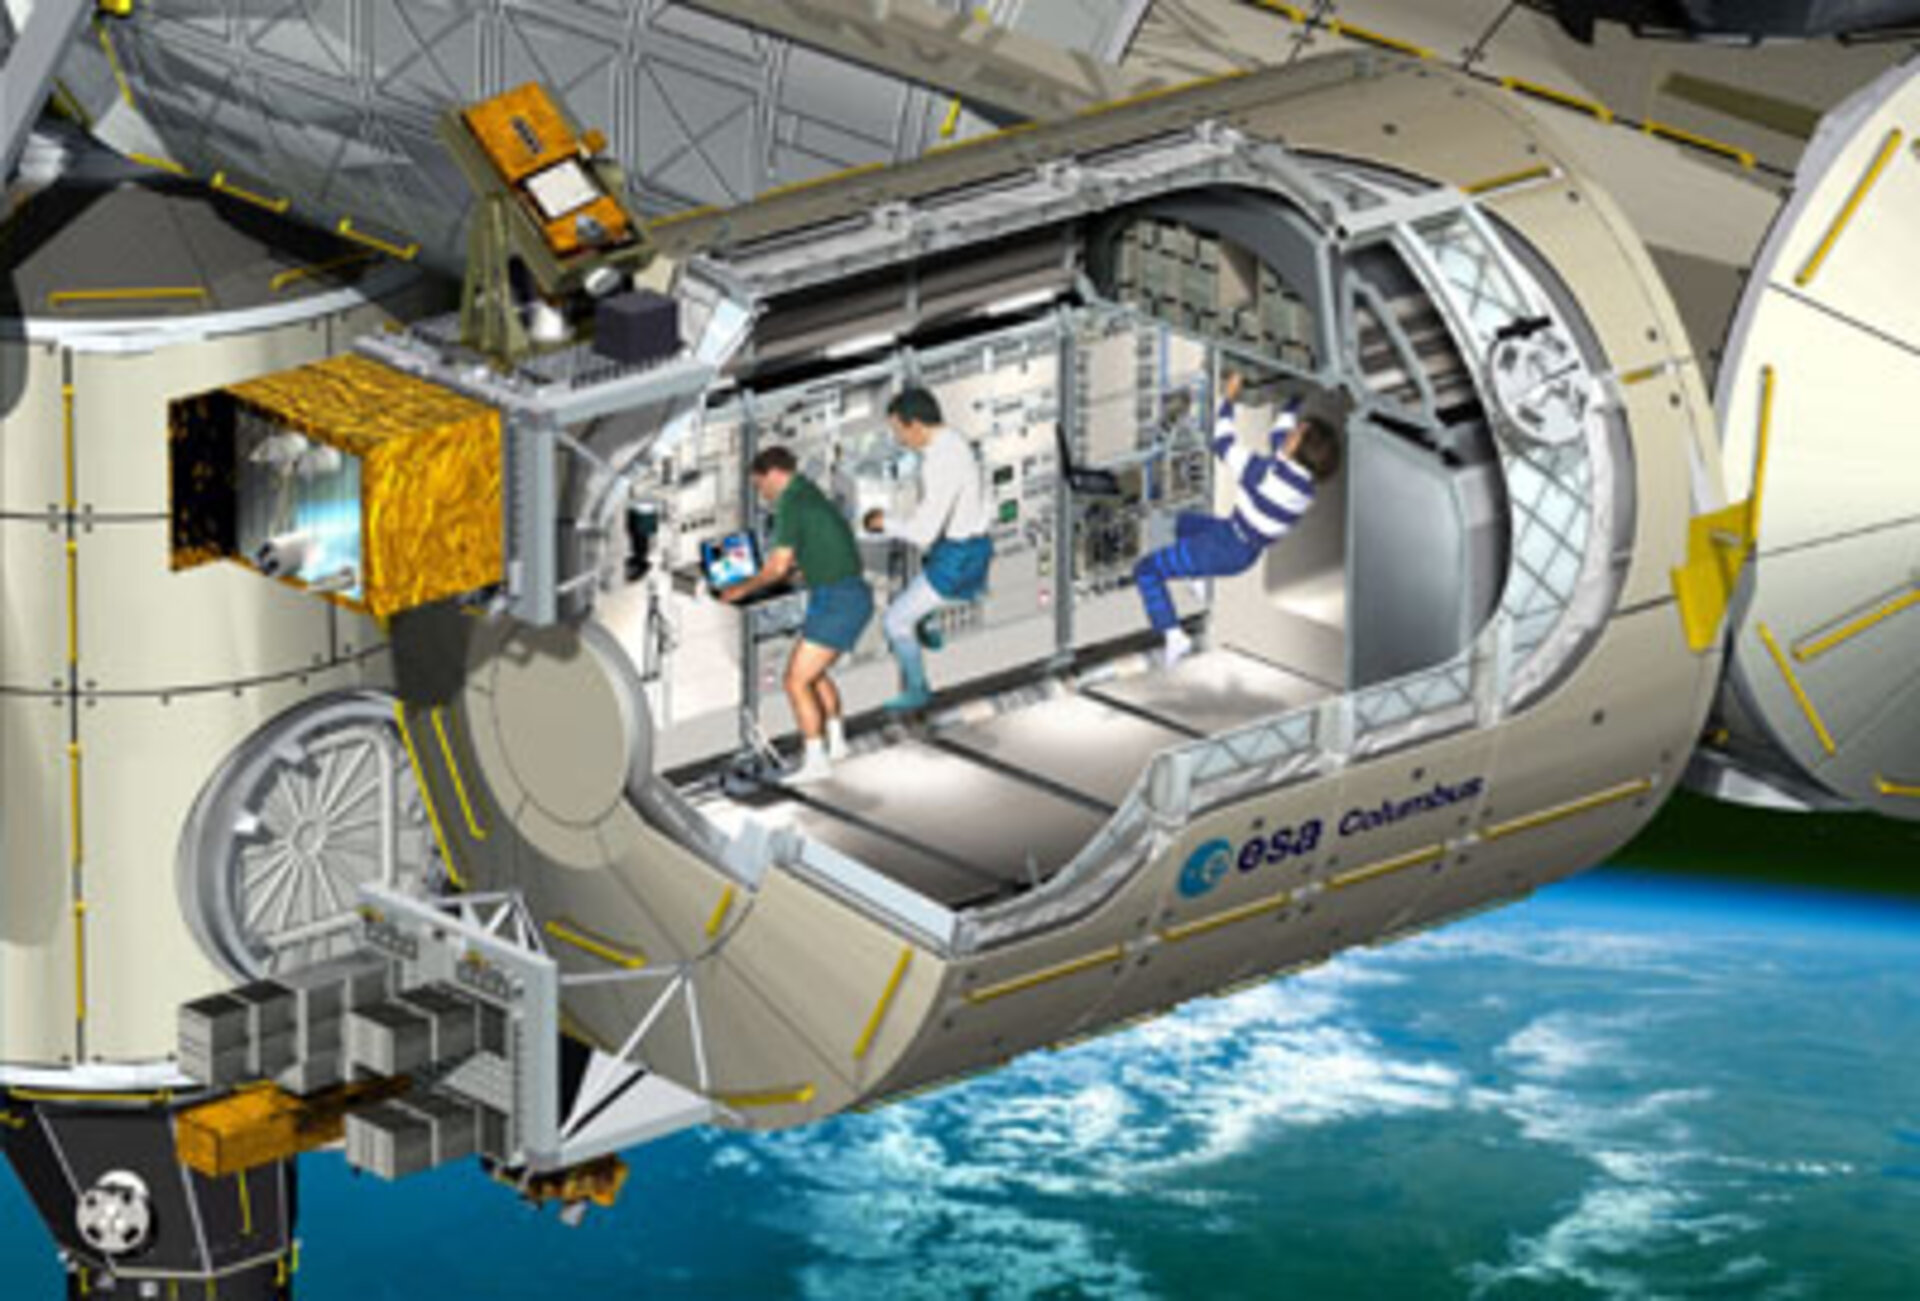 Columbus Laboratory (Cutaway view)